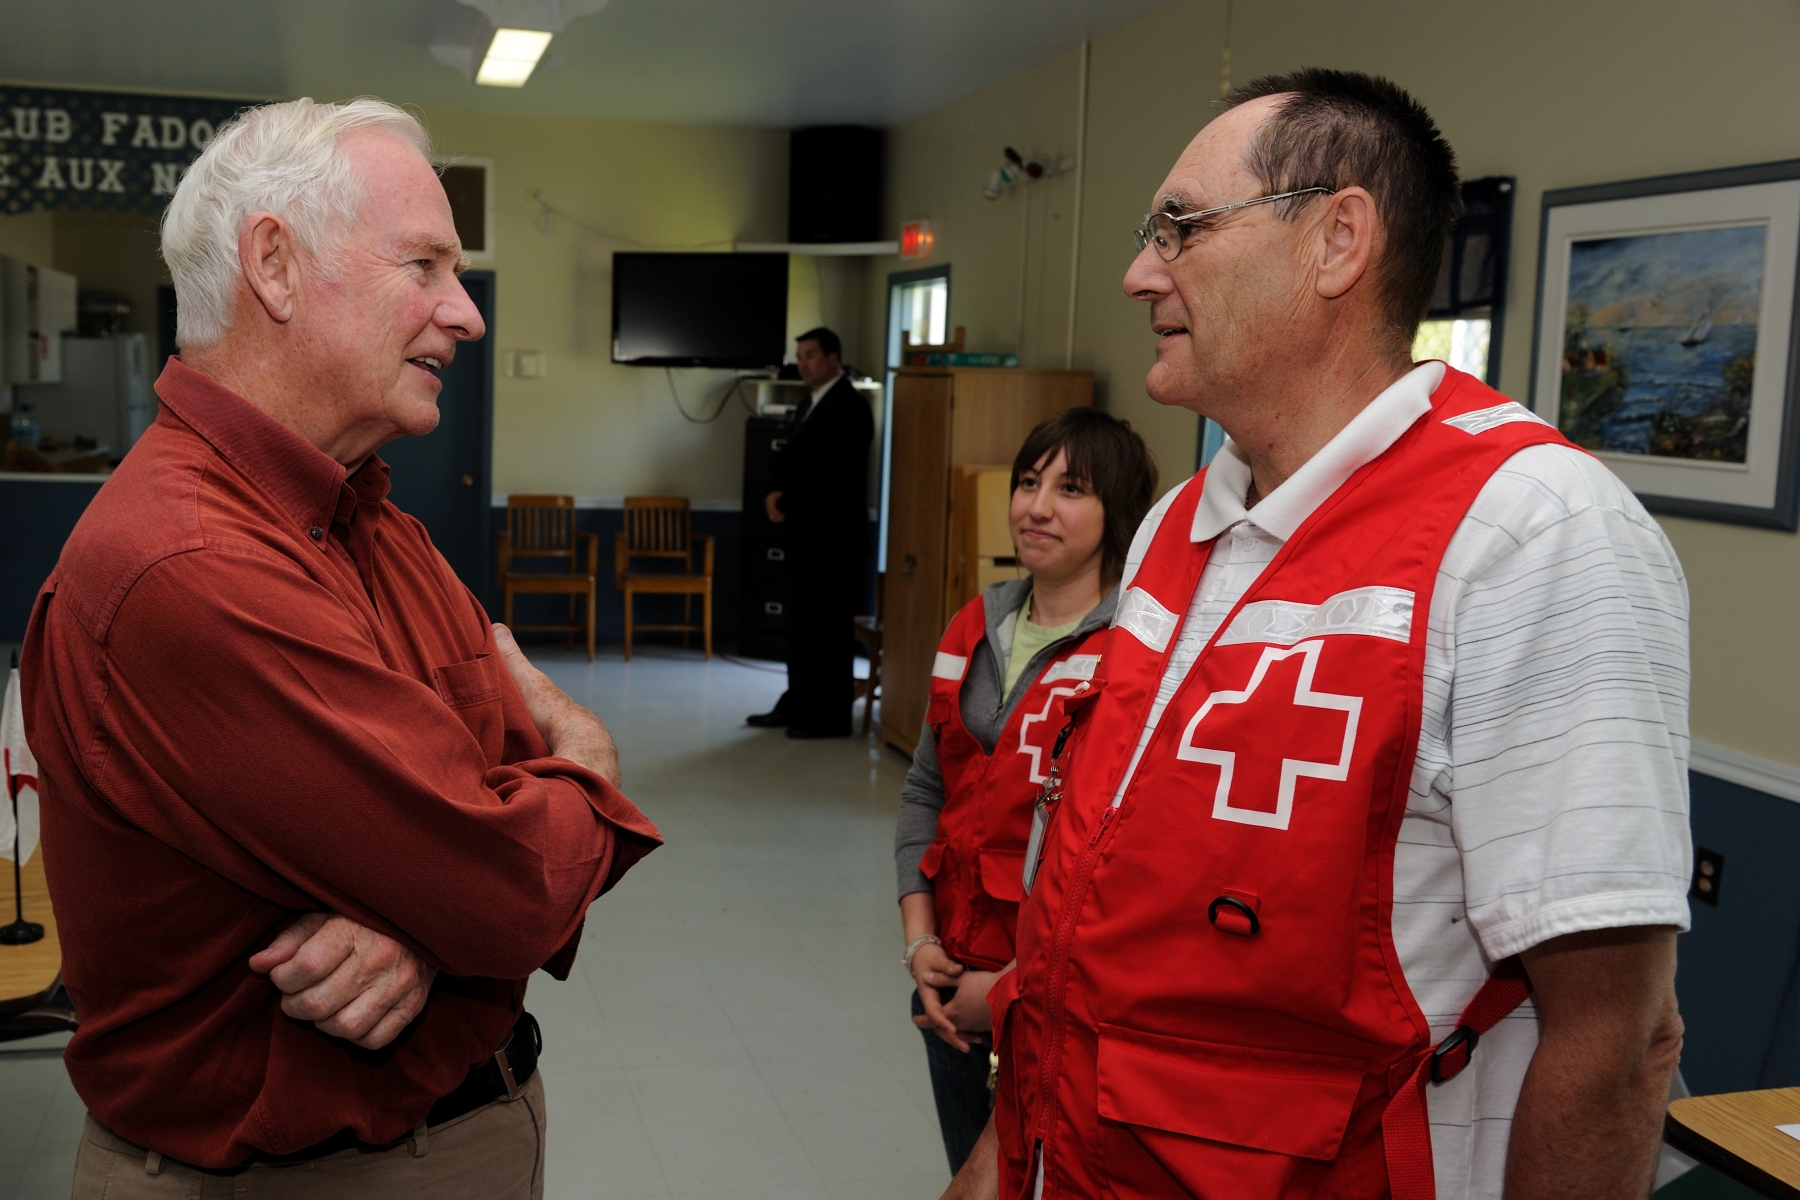 During his visit in Montérégie, the Governor General also met with Red Cross volunteers in Saint-Blaise-sur-Richelieu and Saint-Paul-de-l'Île-aux-Noix. He thanked them for their invaluable help and support for flooding victims during the crisis.